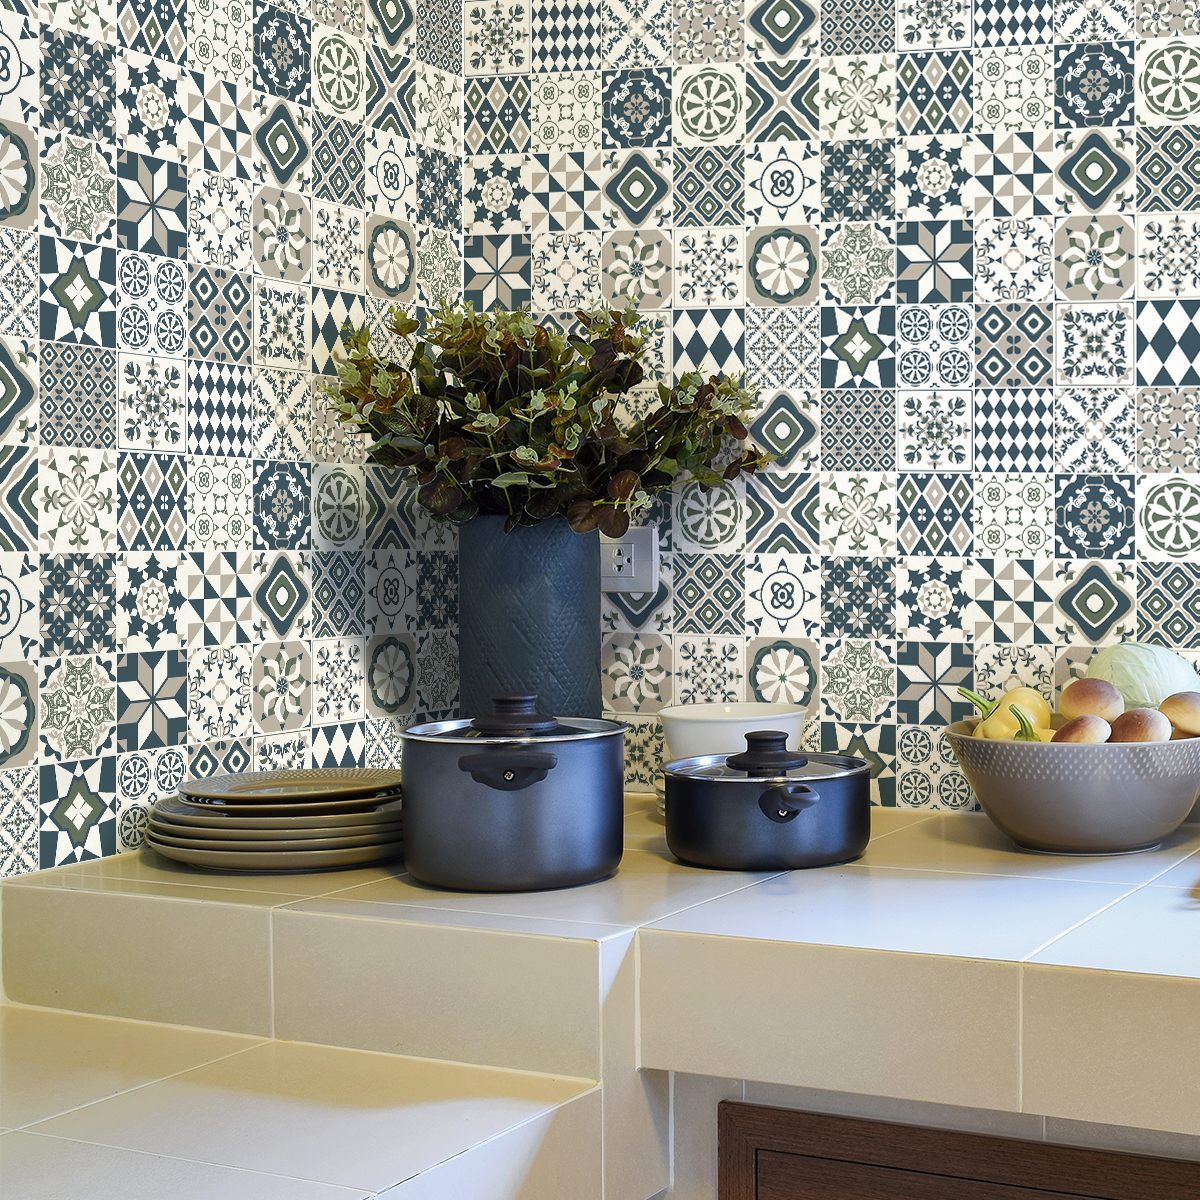 30 stickers carreaux de ciment azulejos donito cuisine carrelages ambiance sticker. Black Bedroom Furniture Sets. Home Design Ideas